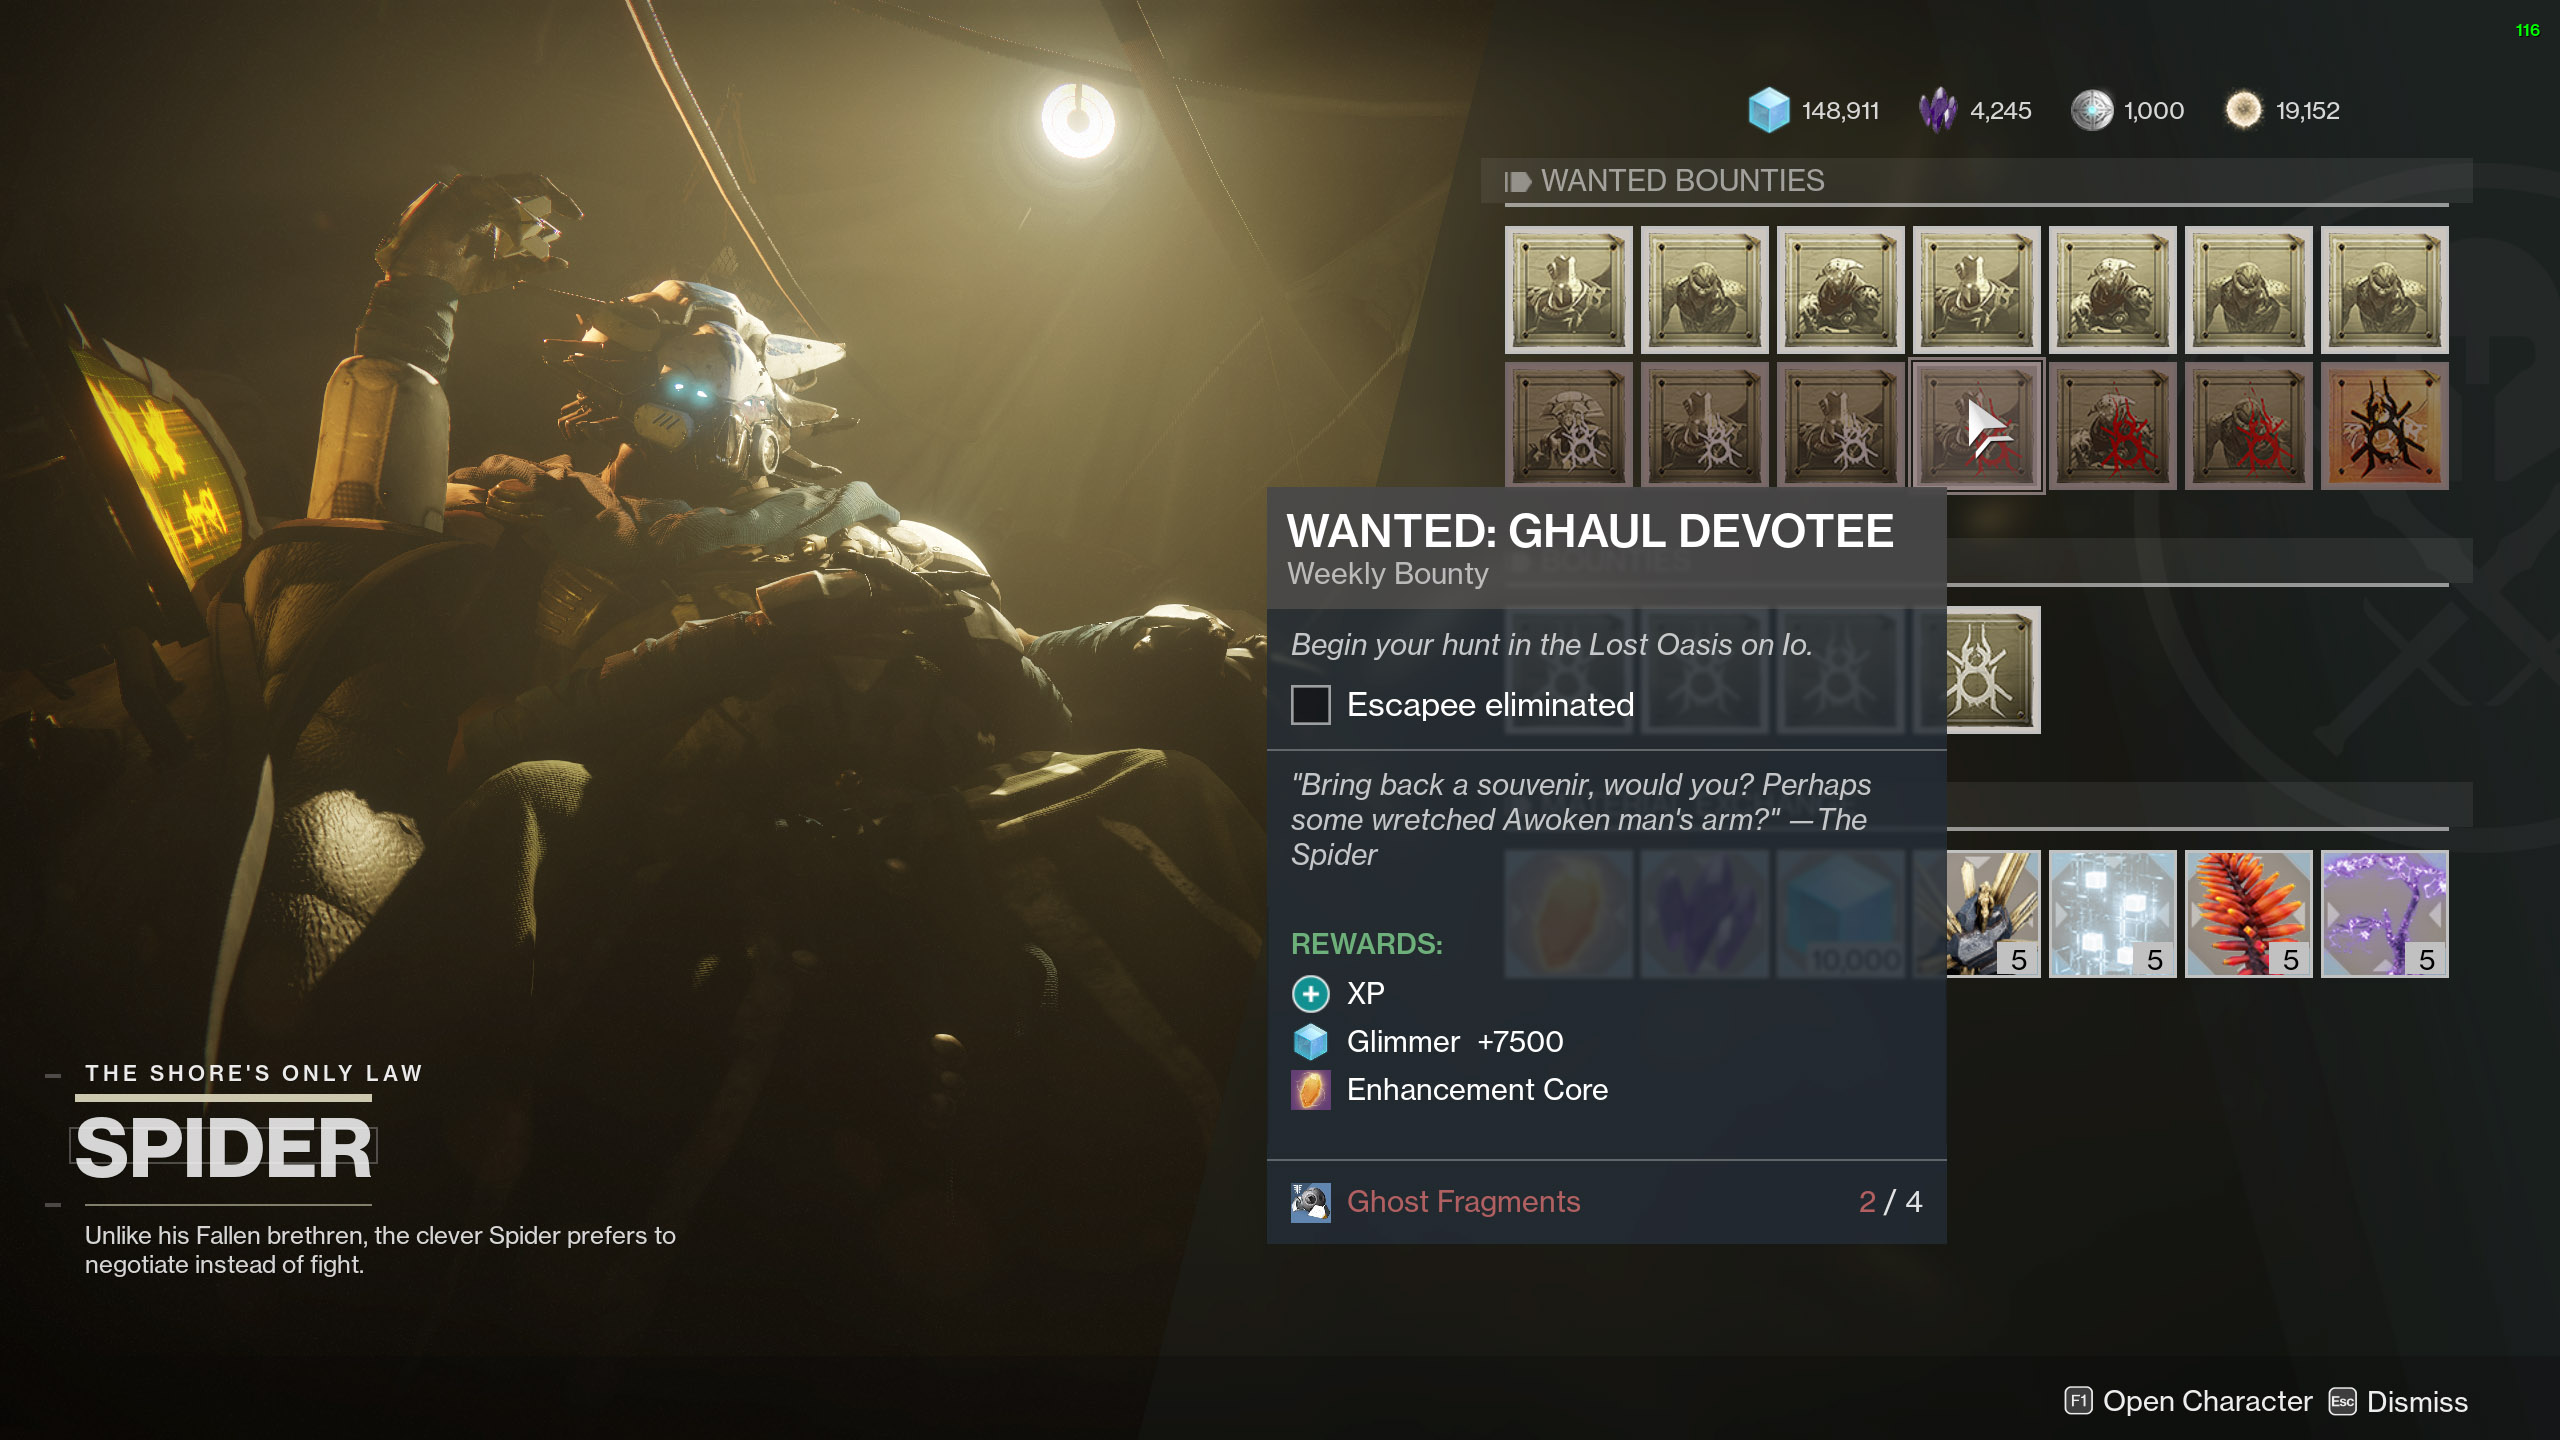 ghaul devotee wanted bounty destiny 2